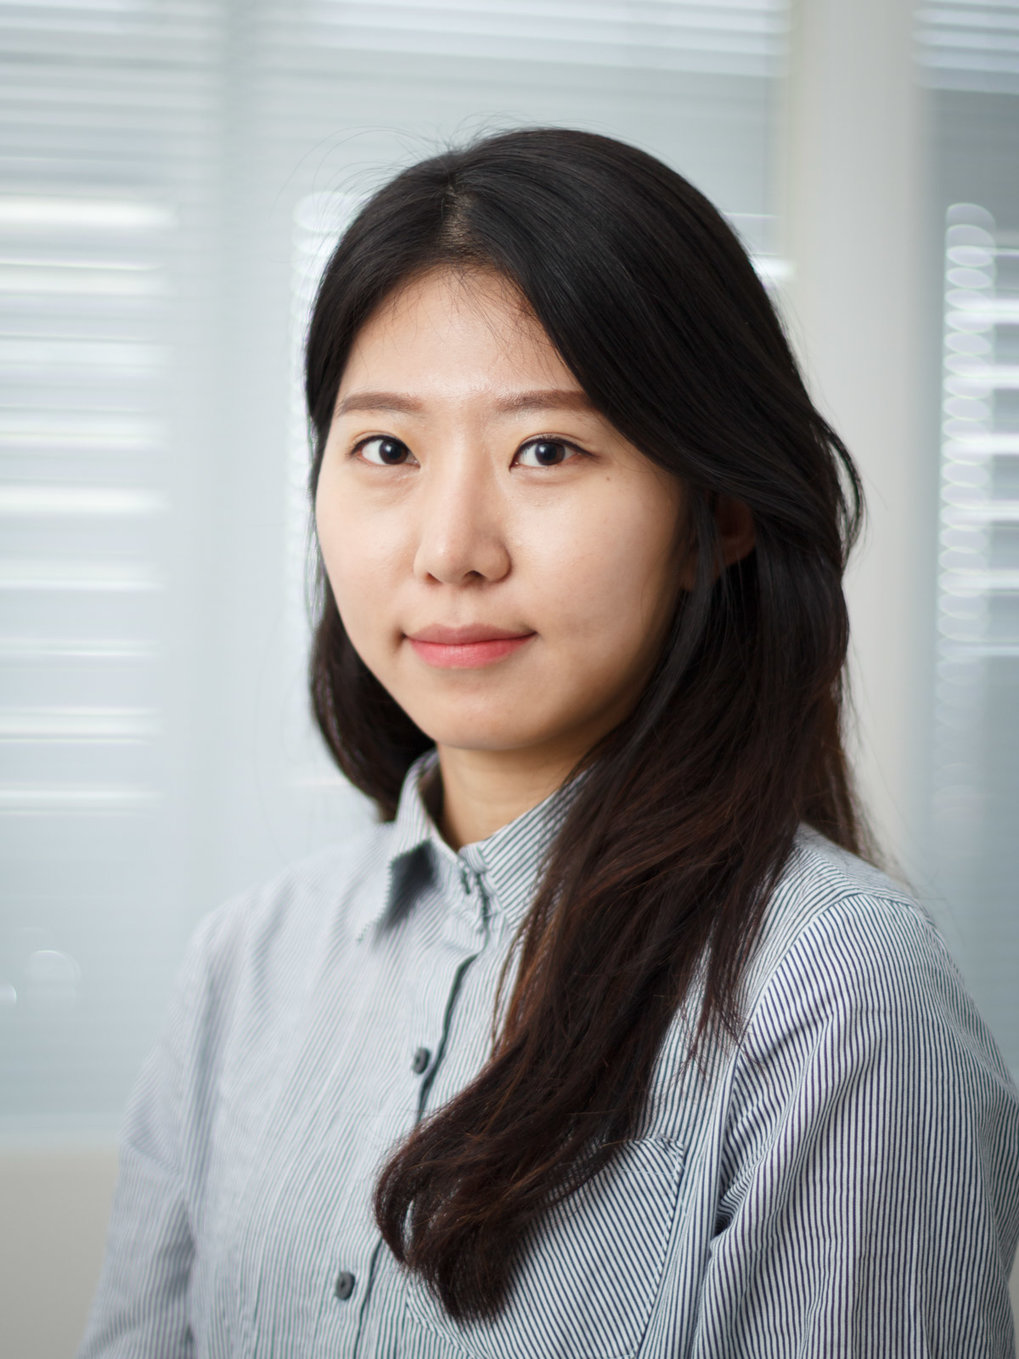 Min-Jae studies optical control of superconductivity via vibrational stimulations. Within that framework she explores novel excitation possibilities within hybrid materials.